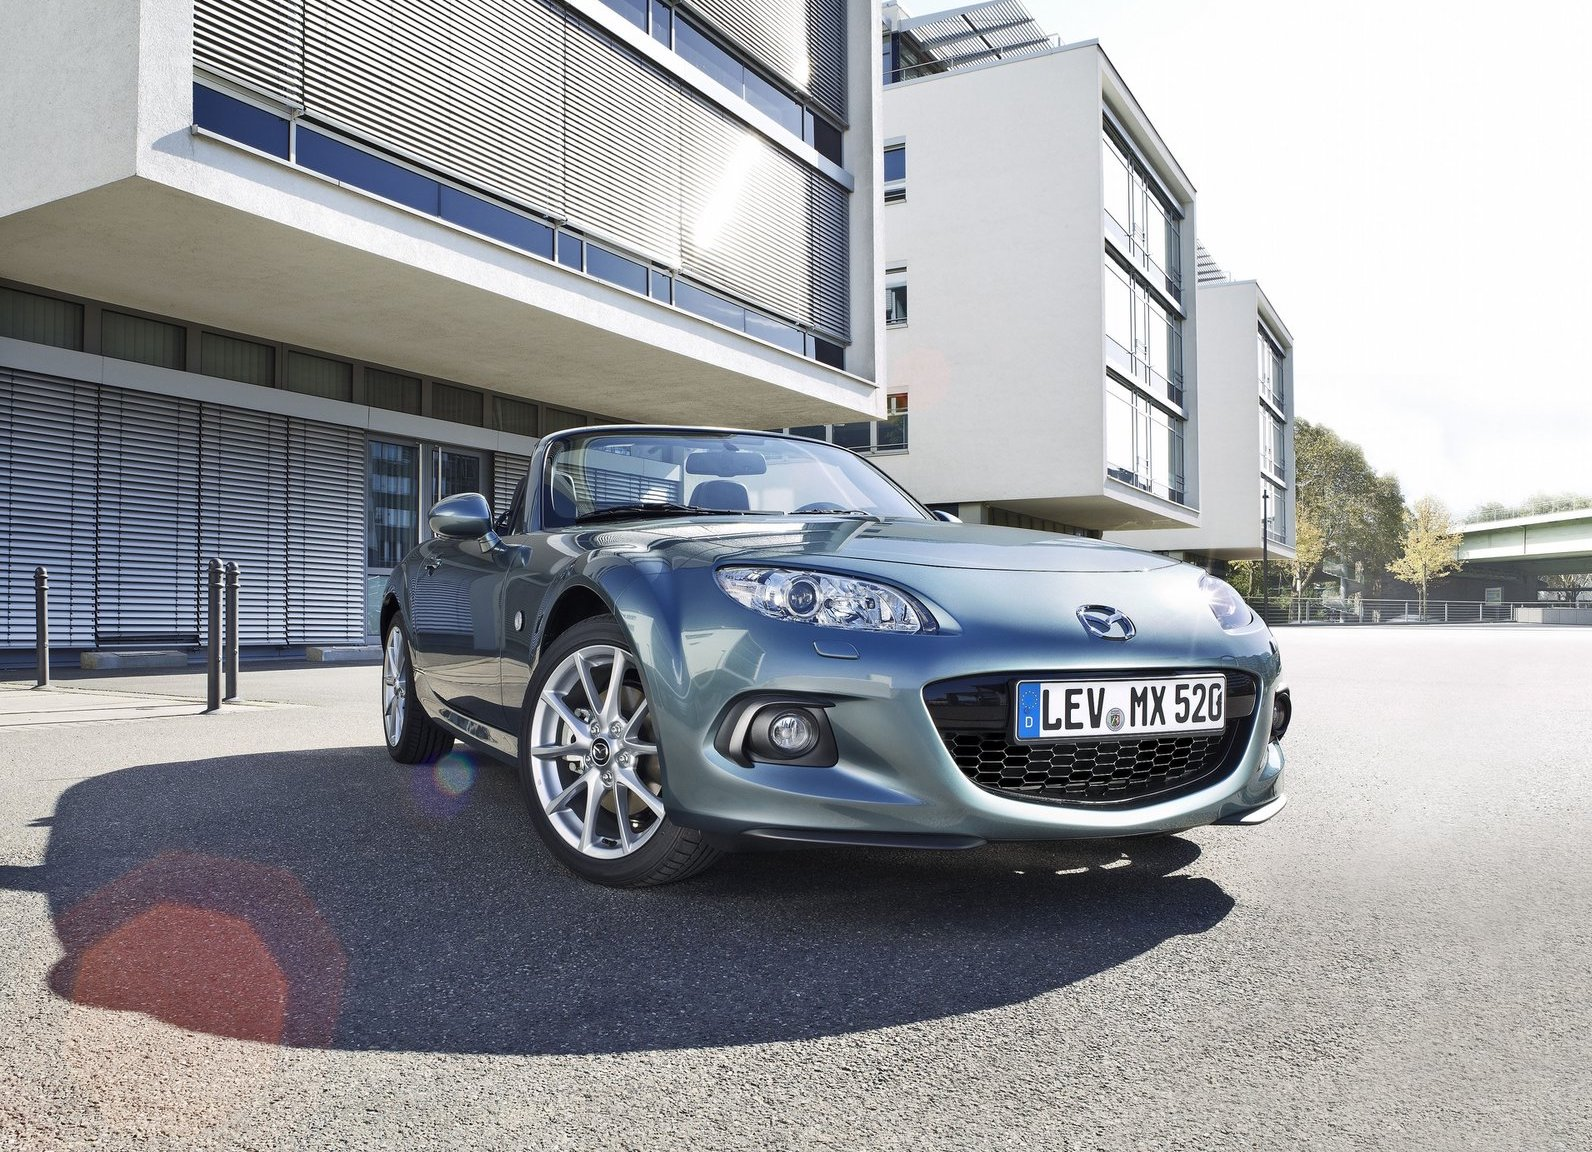 2013 Mazda MX-5 Miata 3/4 low